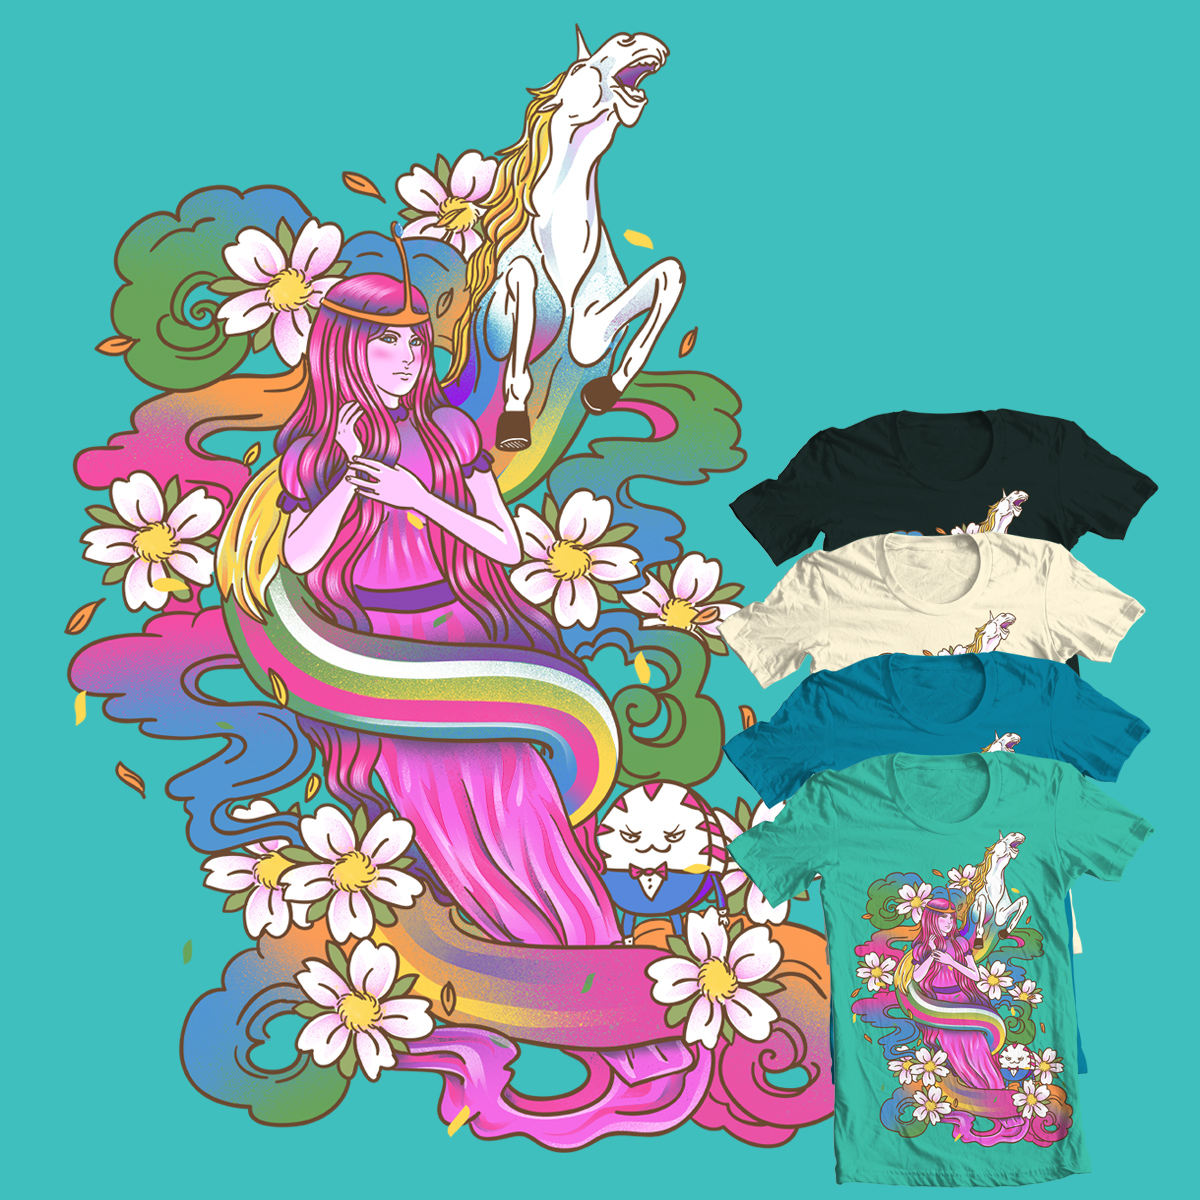 Psychedelic Princess of CandyLand by dandingeroz and xiaobaosg on Threadless